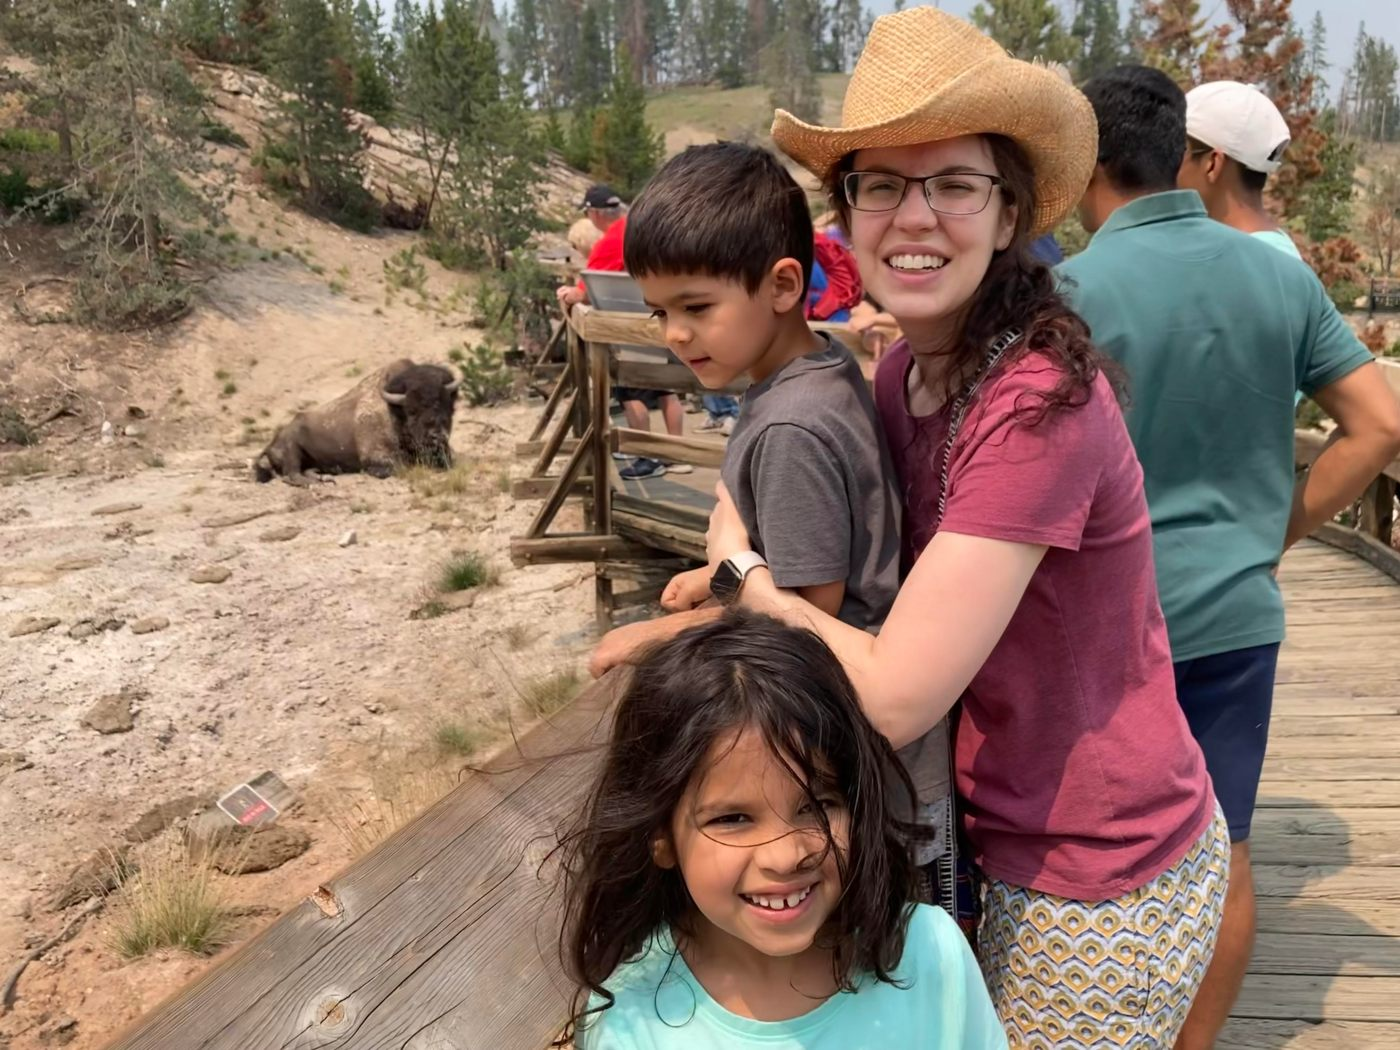 A Mom in a Cowboy hat, standing with her children, a five year old boy and eight year old girl, some distance away from a Buffalo in Yellowstone National Park.